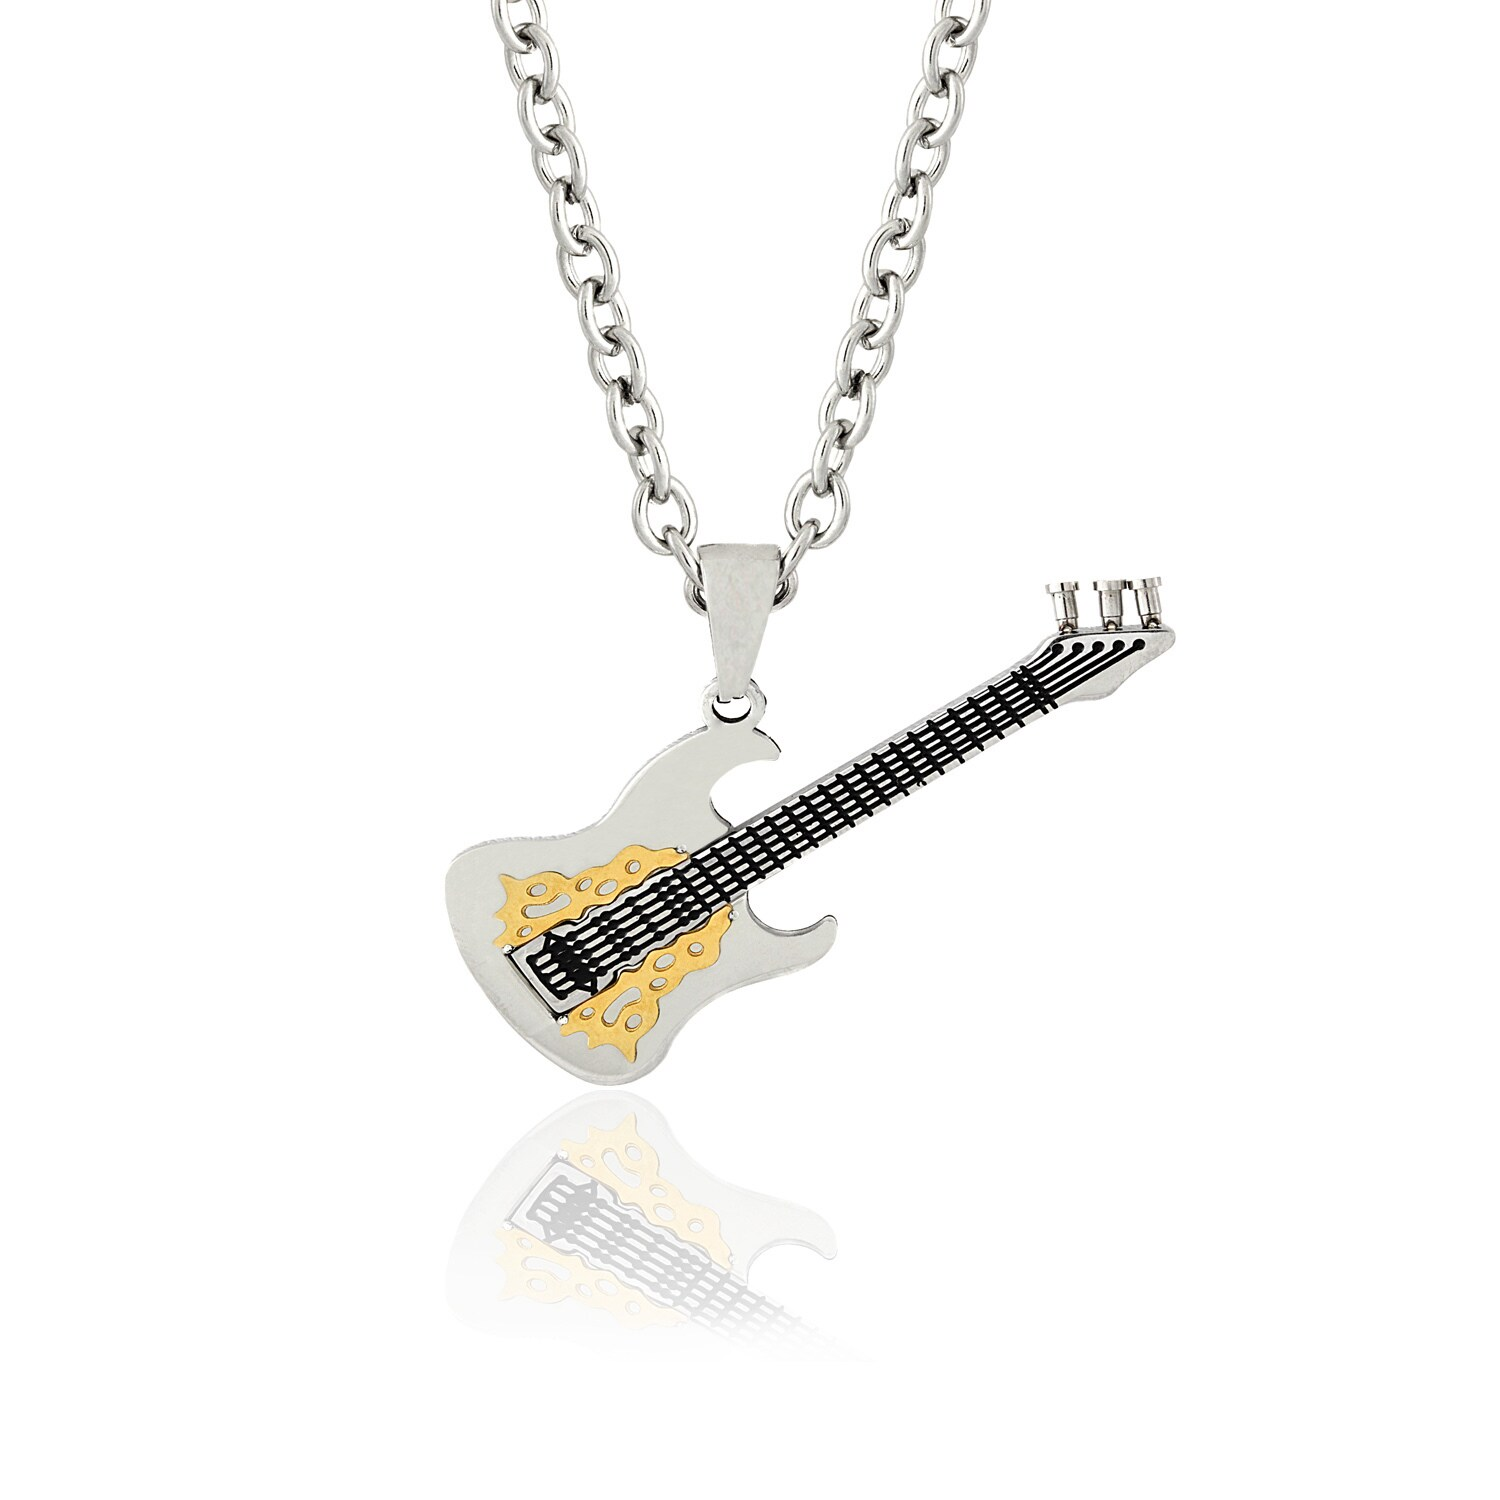 Stainless Steel Silver-Tone Electric Guitar Pendant Necklace